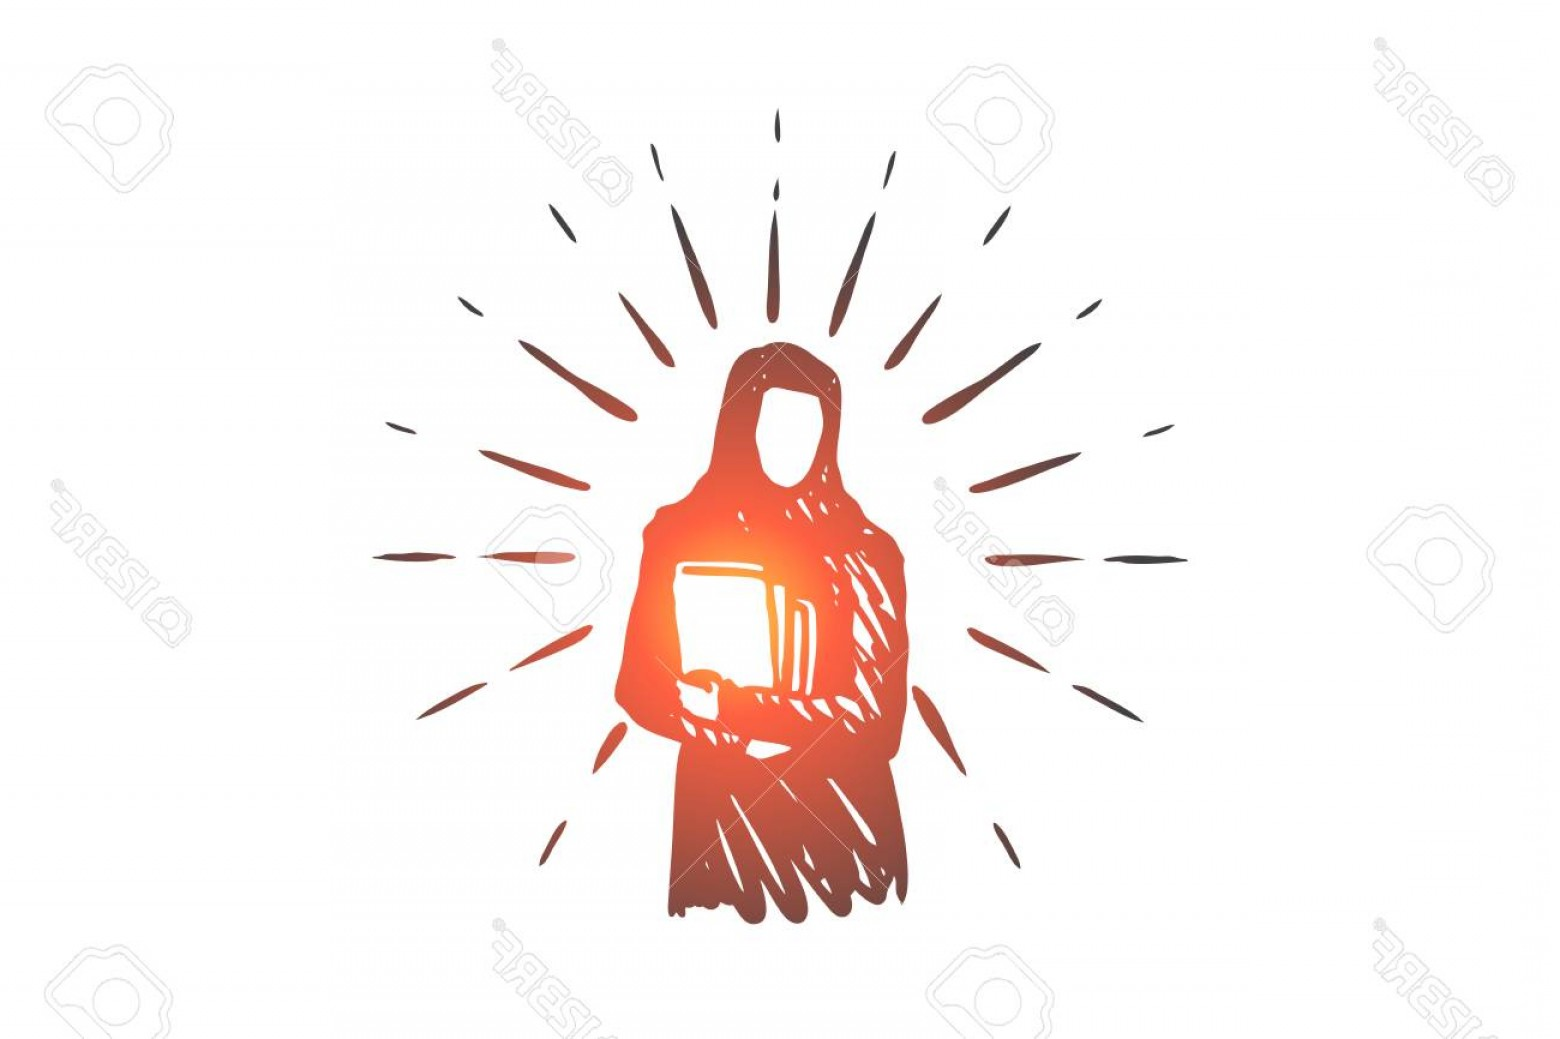 Boba Fett Silhouette Vector: Photostock Vector Education Student Muslim Arabic Islam Library Concept Hand Drawn Silhouette Of Muslim Woman With Boo